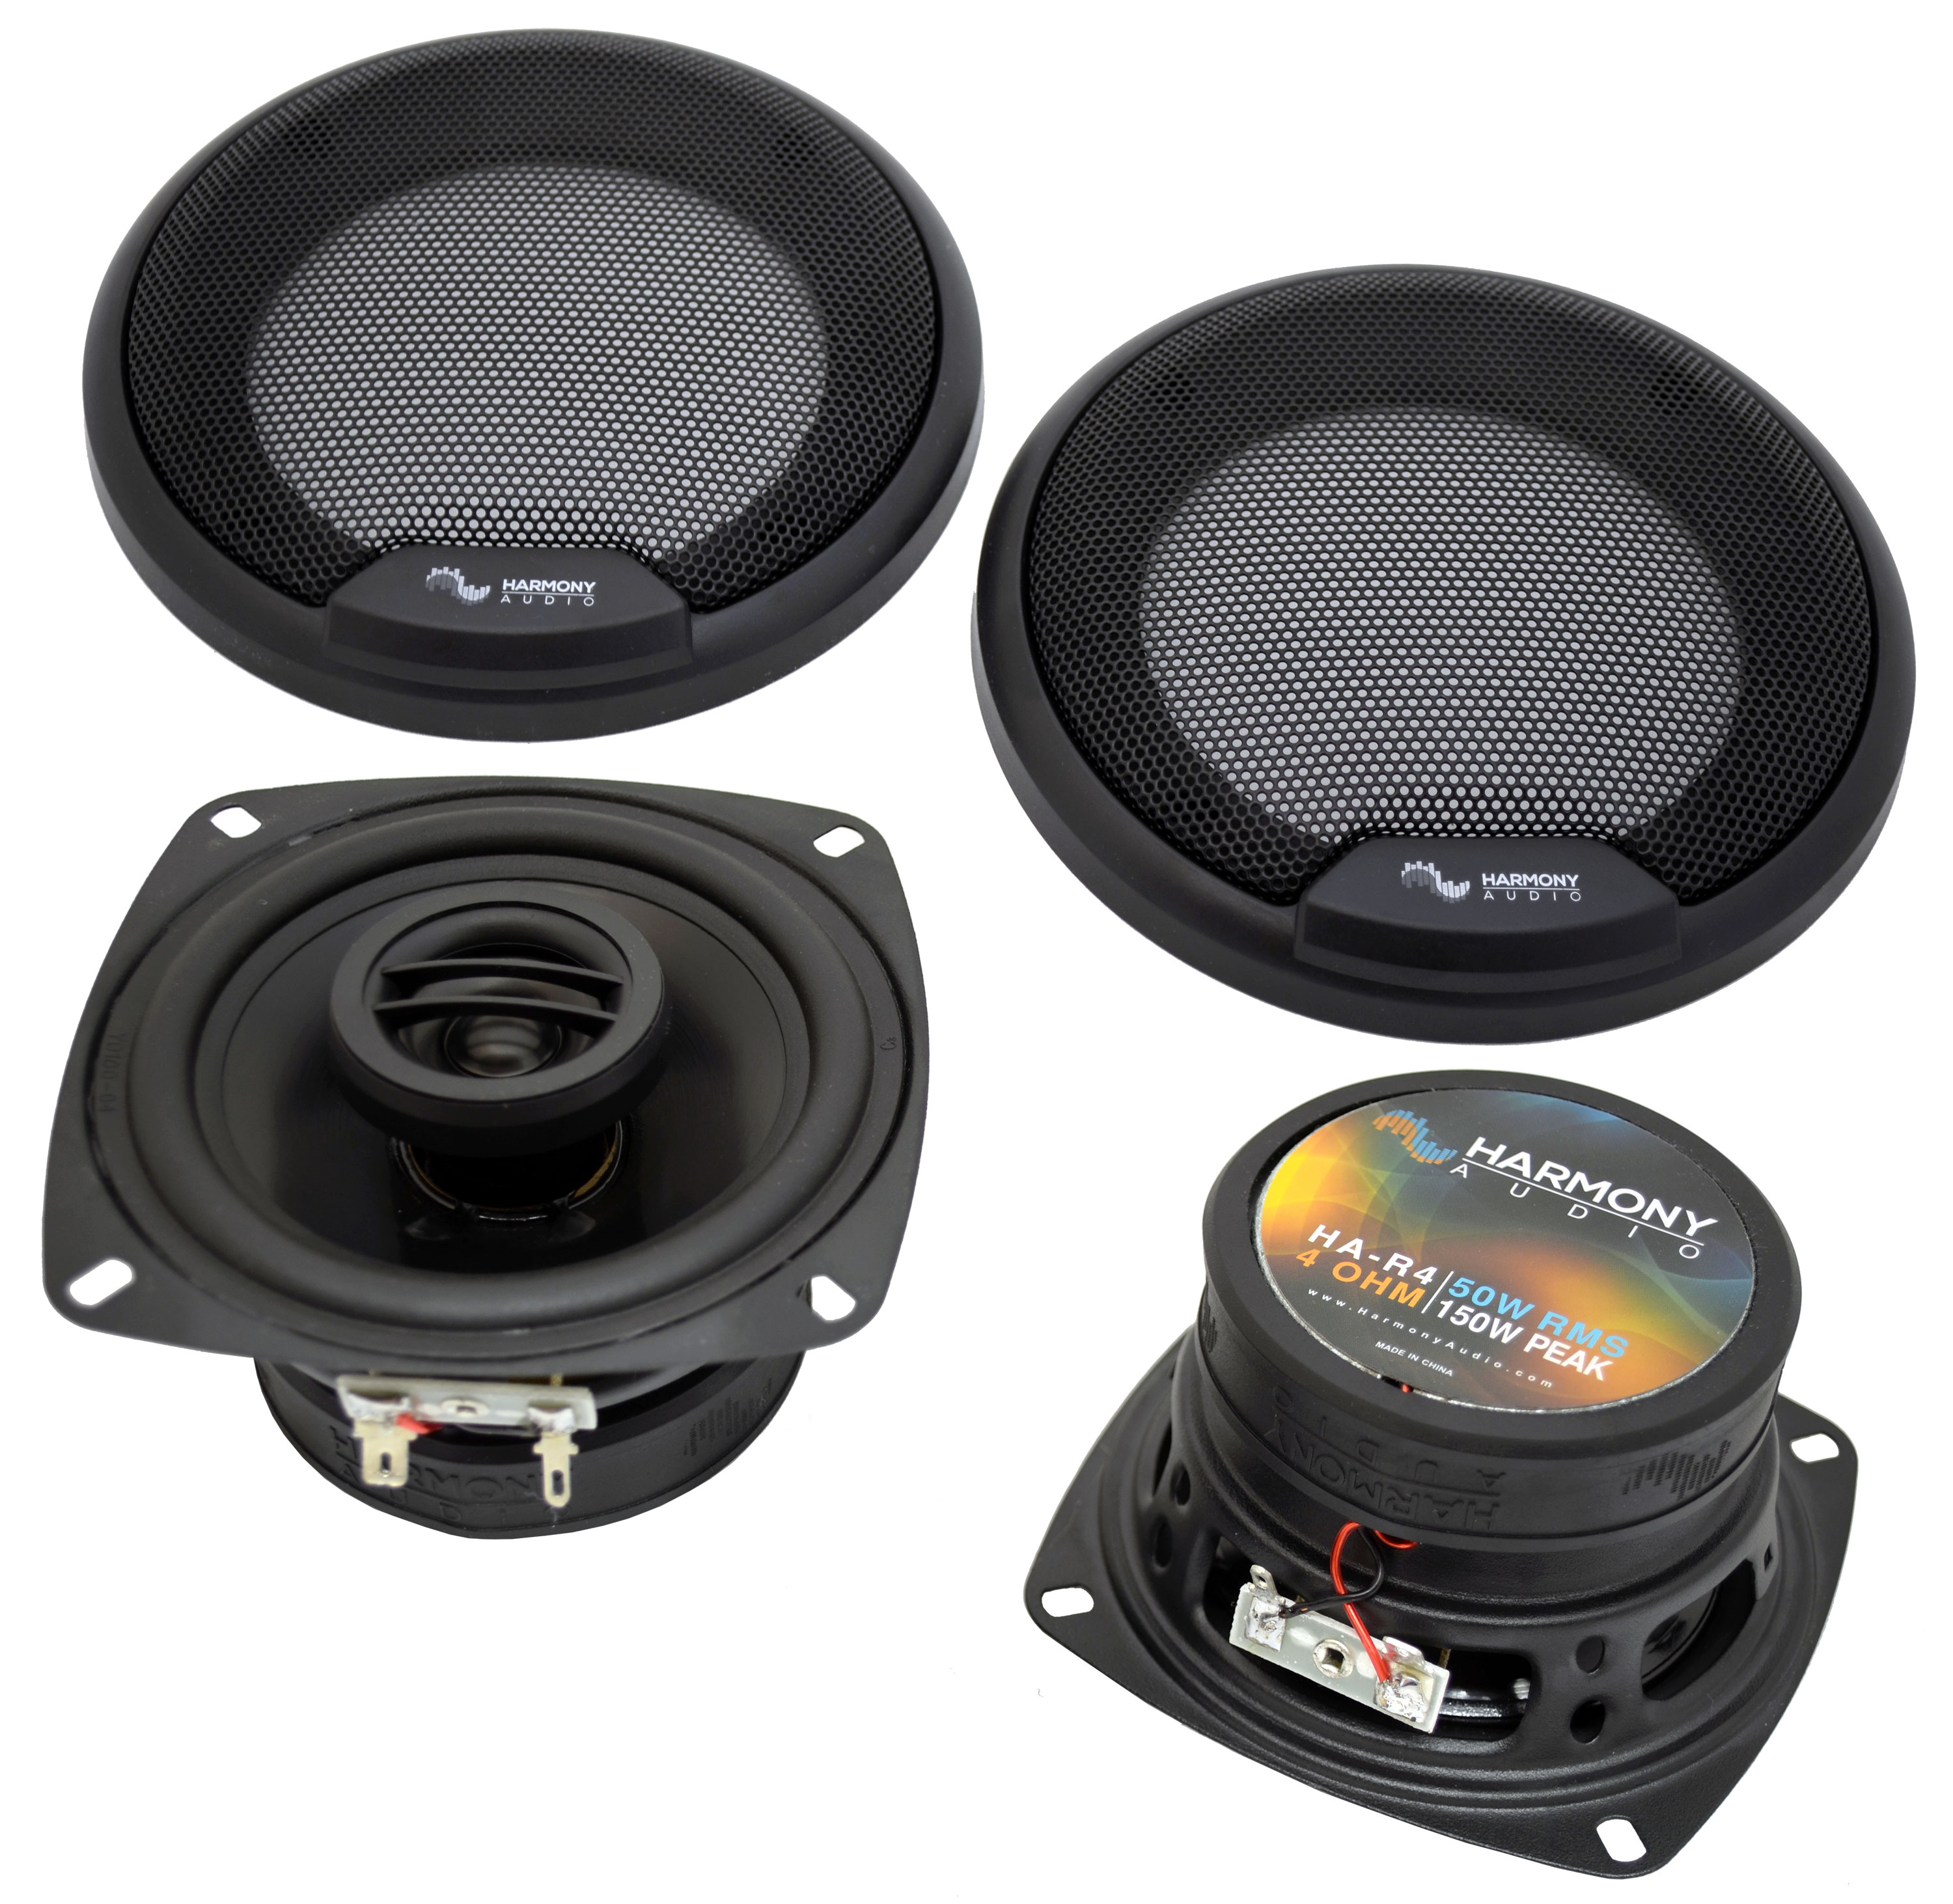 Ford-Bronco-II-1983-1988-Factory-Speaker-Upgrade-Harmony-R4-R68-Package-New thumbnail 2